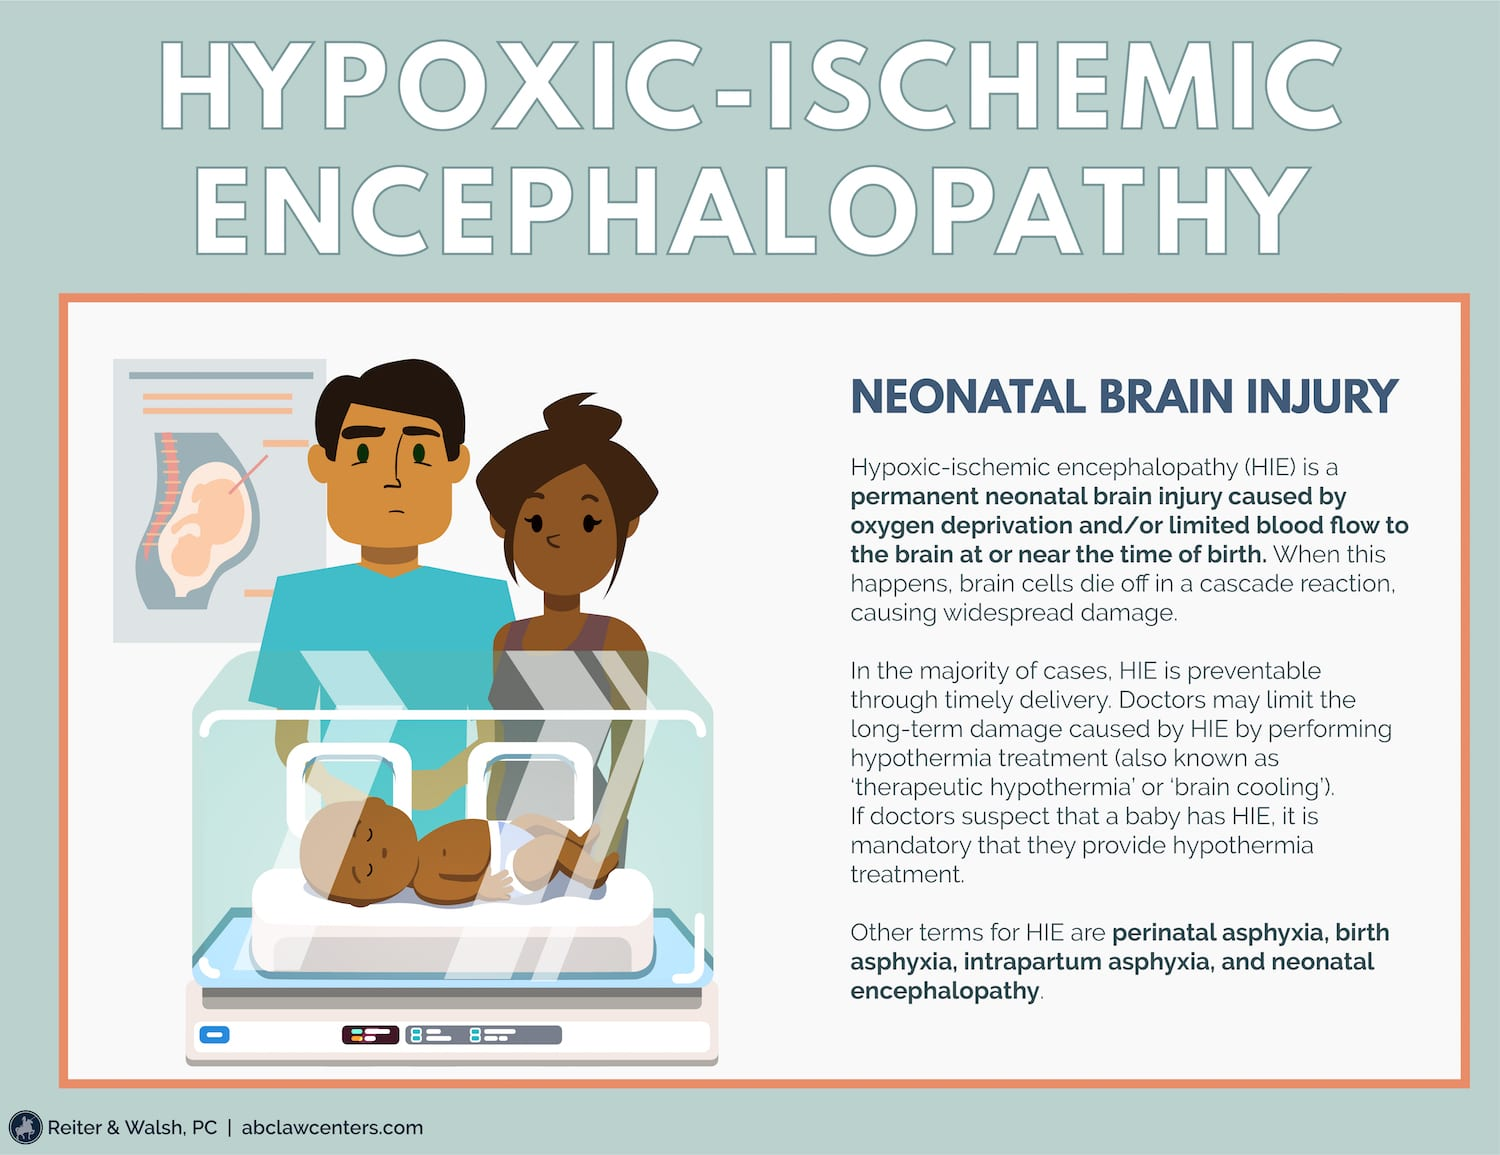 Hypoxic-Ischemic Encephalopathy (HIE): Legal Help for Birth Injuries